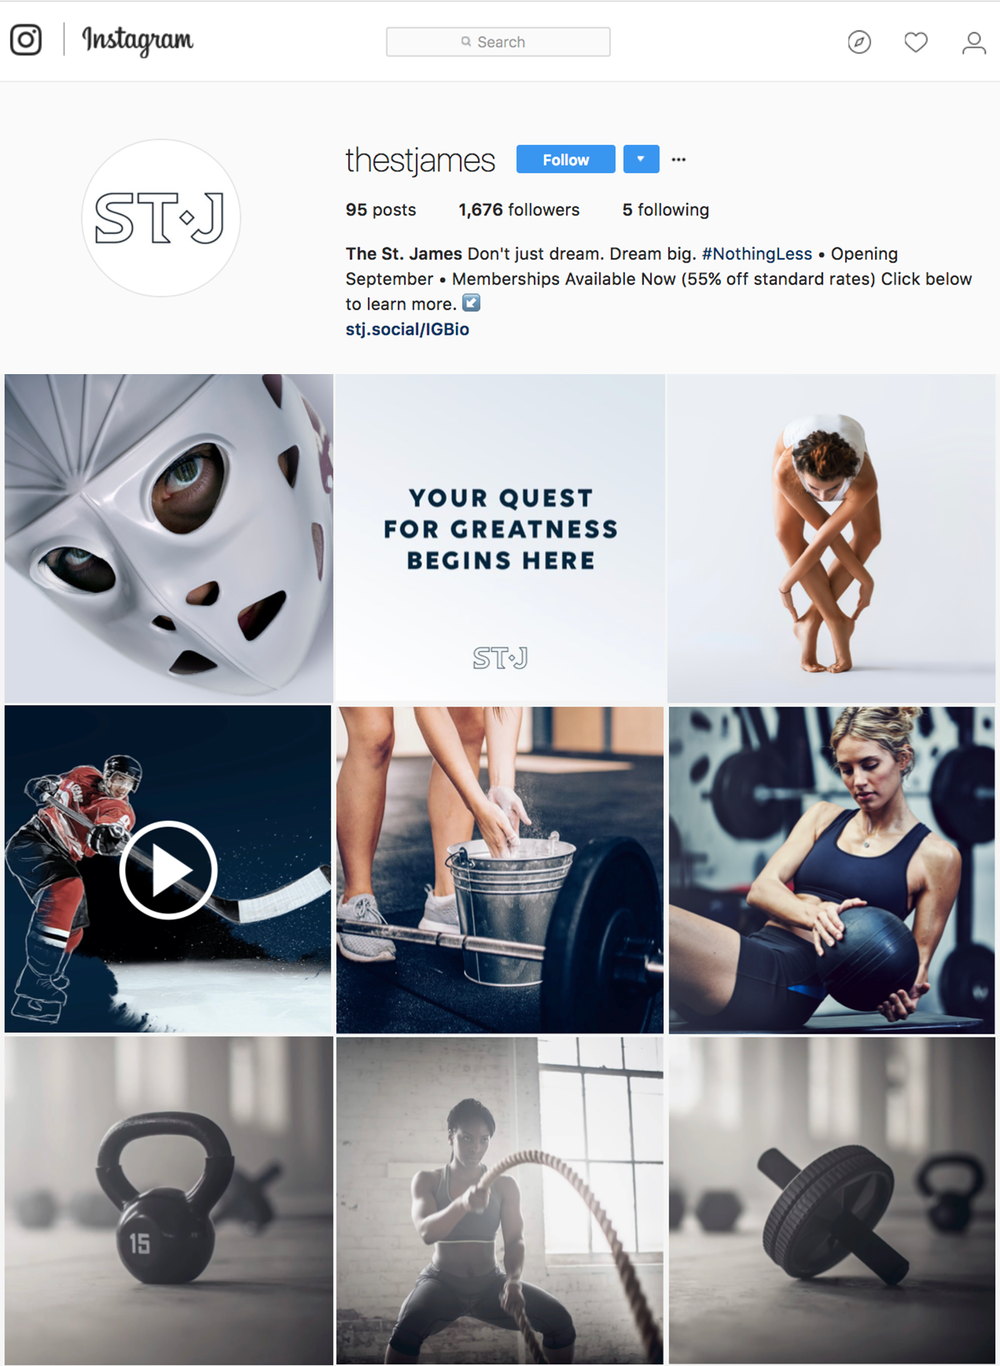 OUR IG ENGAGEMENT IS 6X THAT OF ESTABLISHED COMPETITORS. -